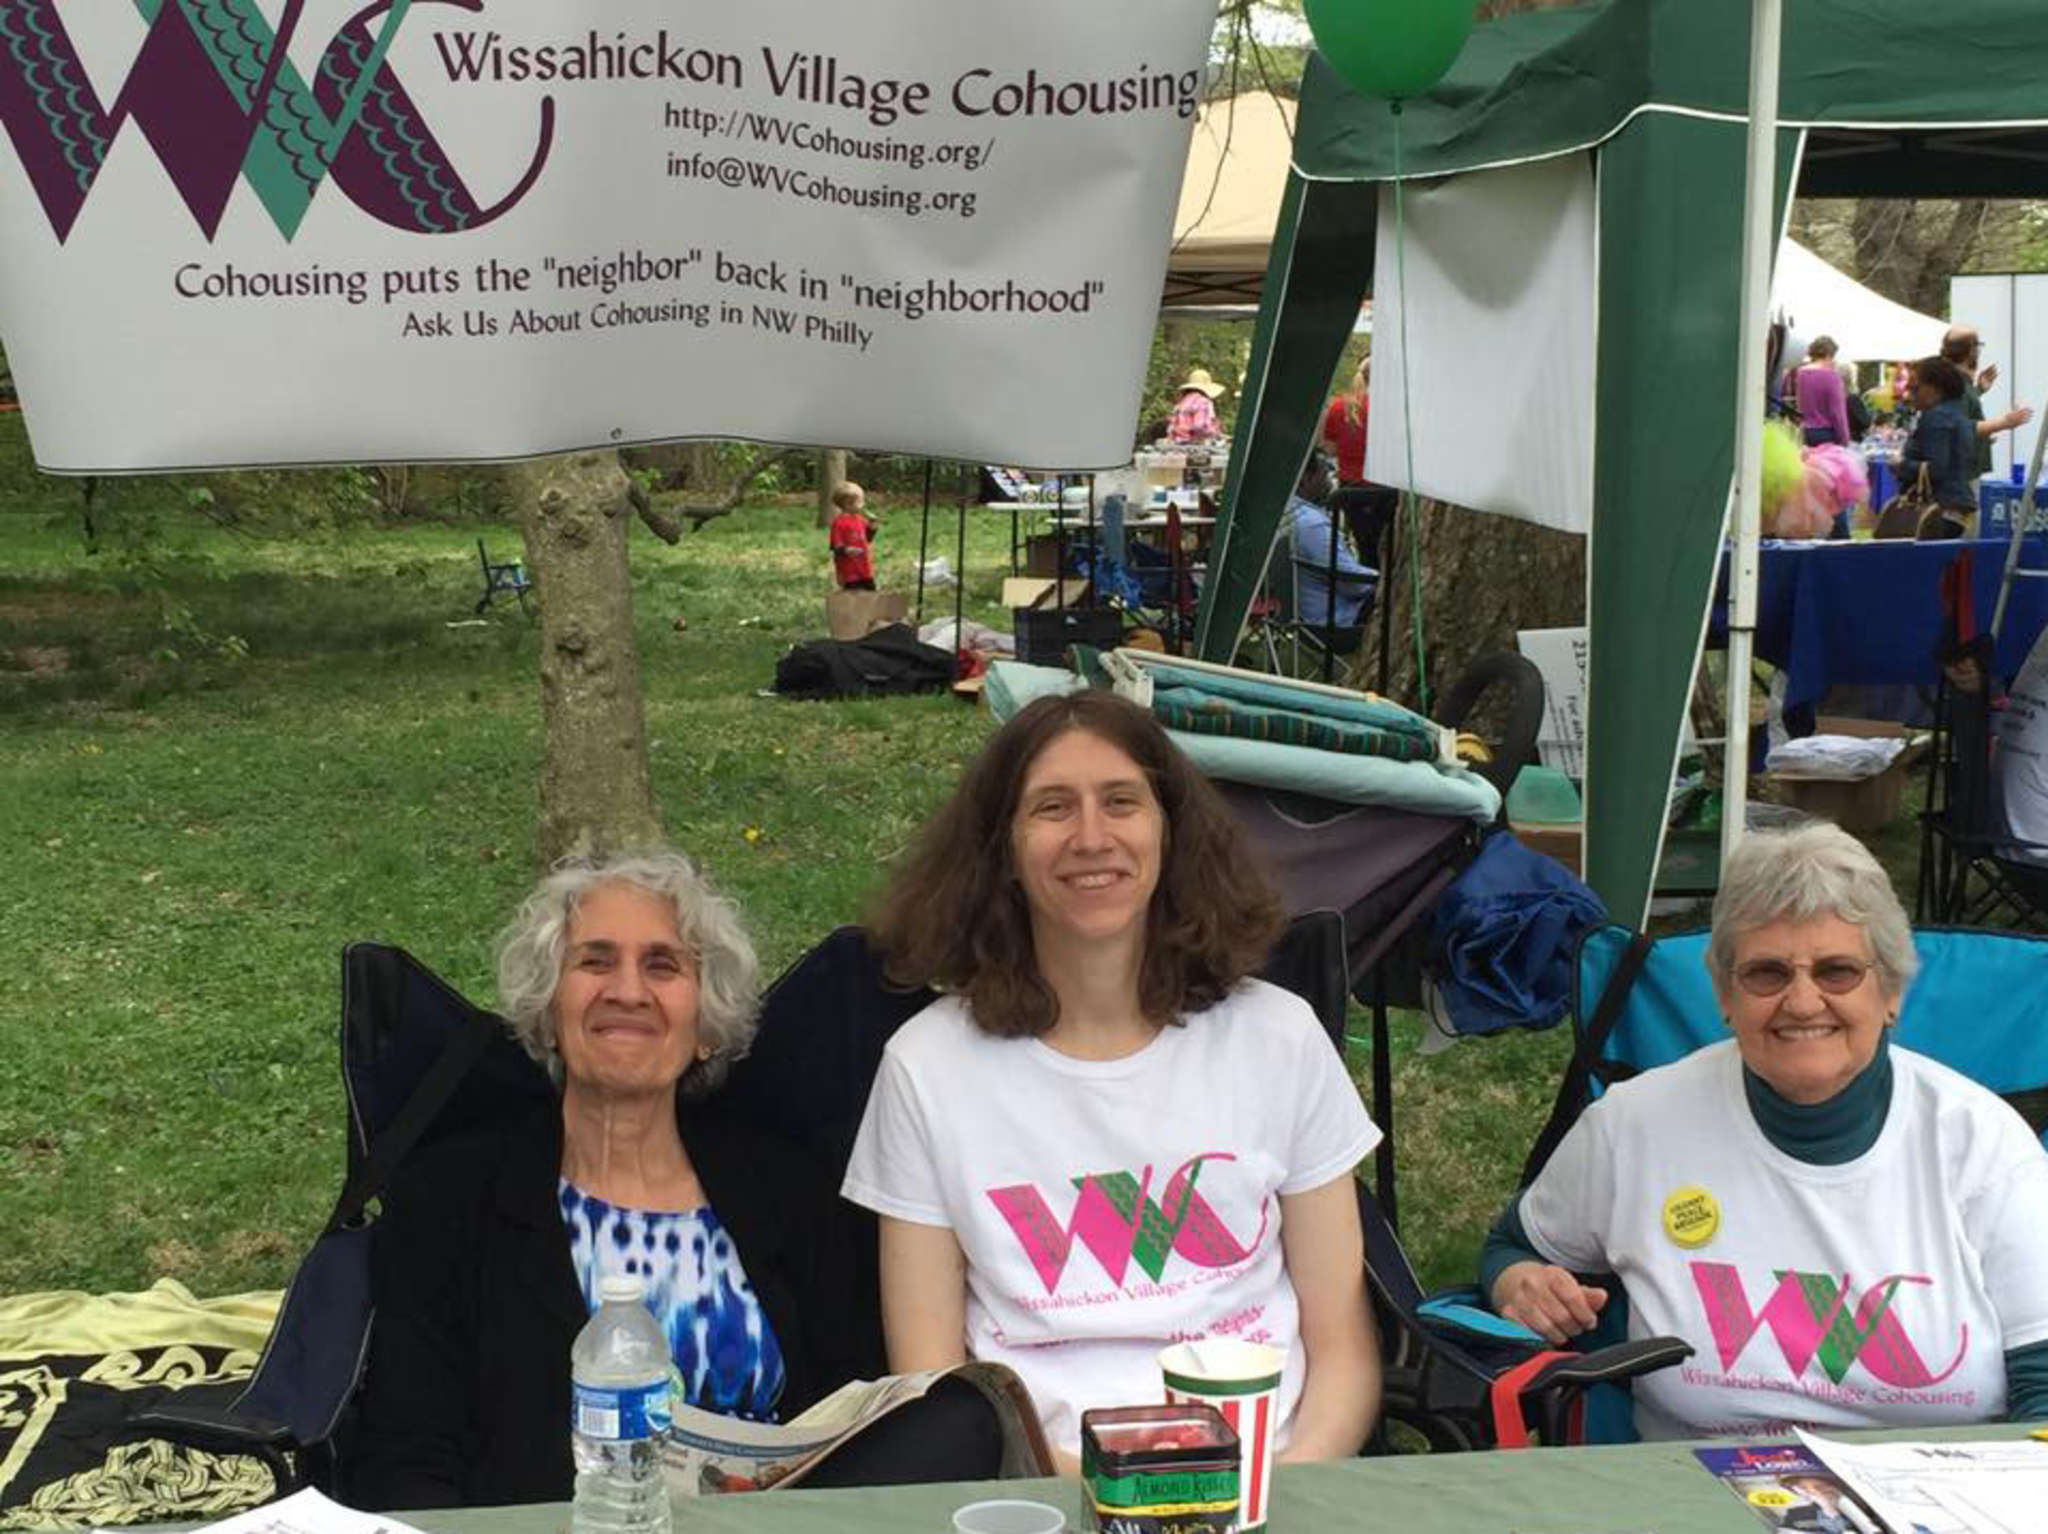 Susan Sussman , from left, Neysa Nevins, and Gloria Hoffman are members of Wissahickon Village Cohousing, a group seeking a senior-friendly home.